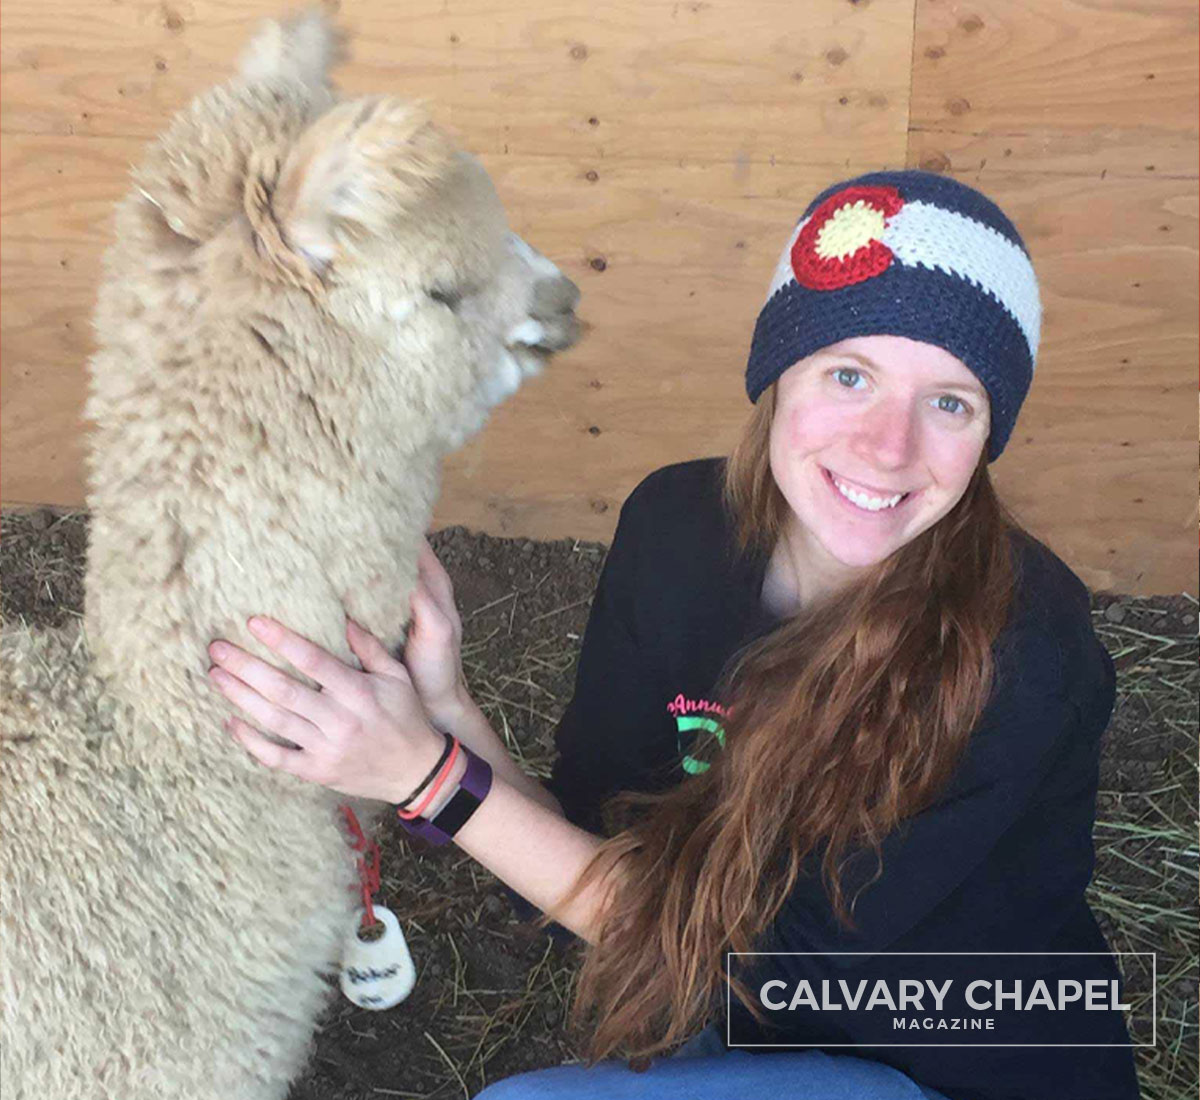 Lady with alpaca